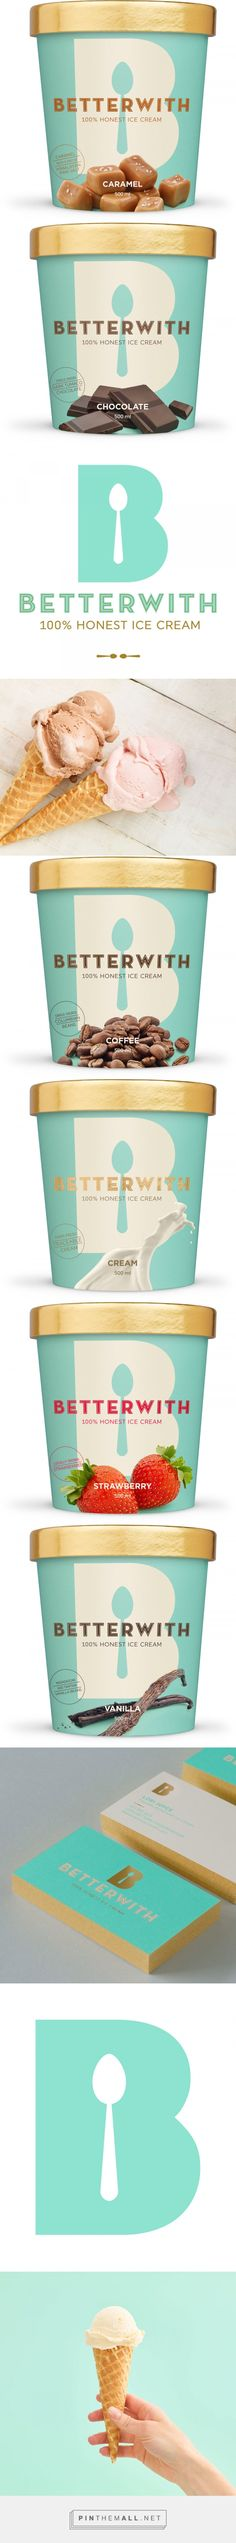 Grab Your Spoon for Betterwith Farm-Fresh Ice Cream Packaging — The Dieline | Packaging & Branding Design & Innovation News - created via https://pinthemall.net